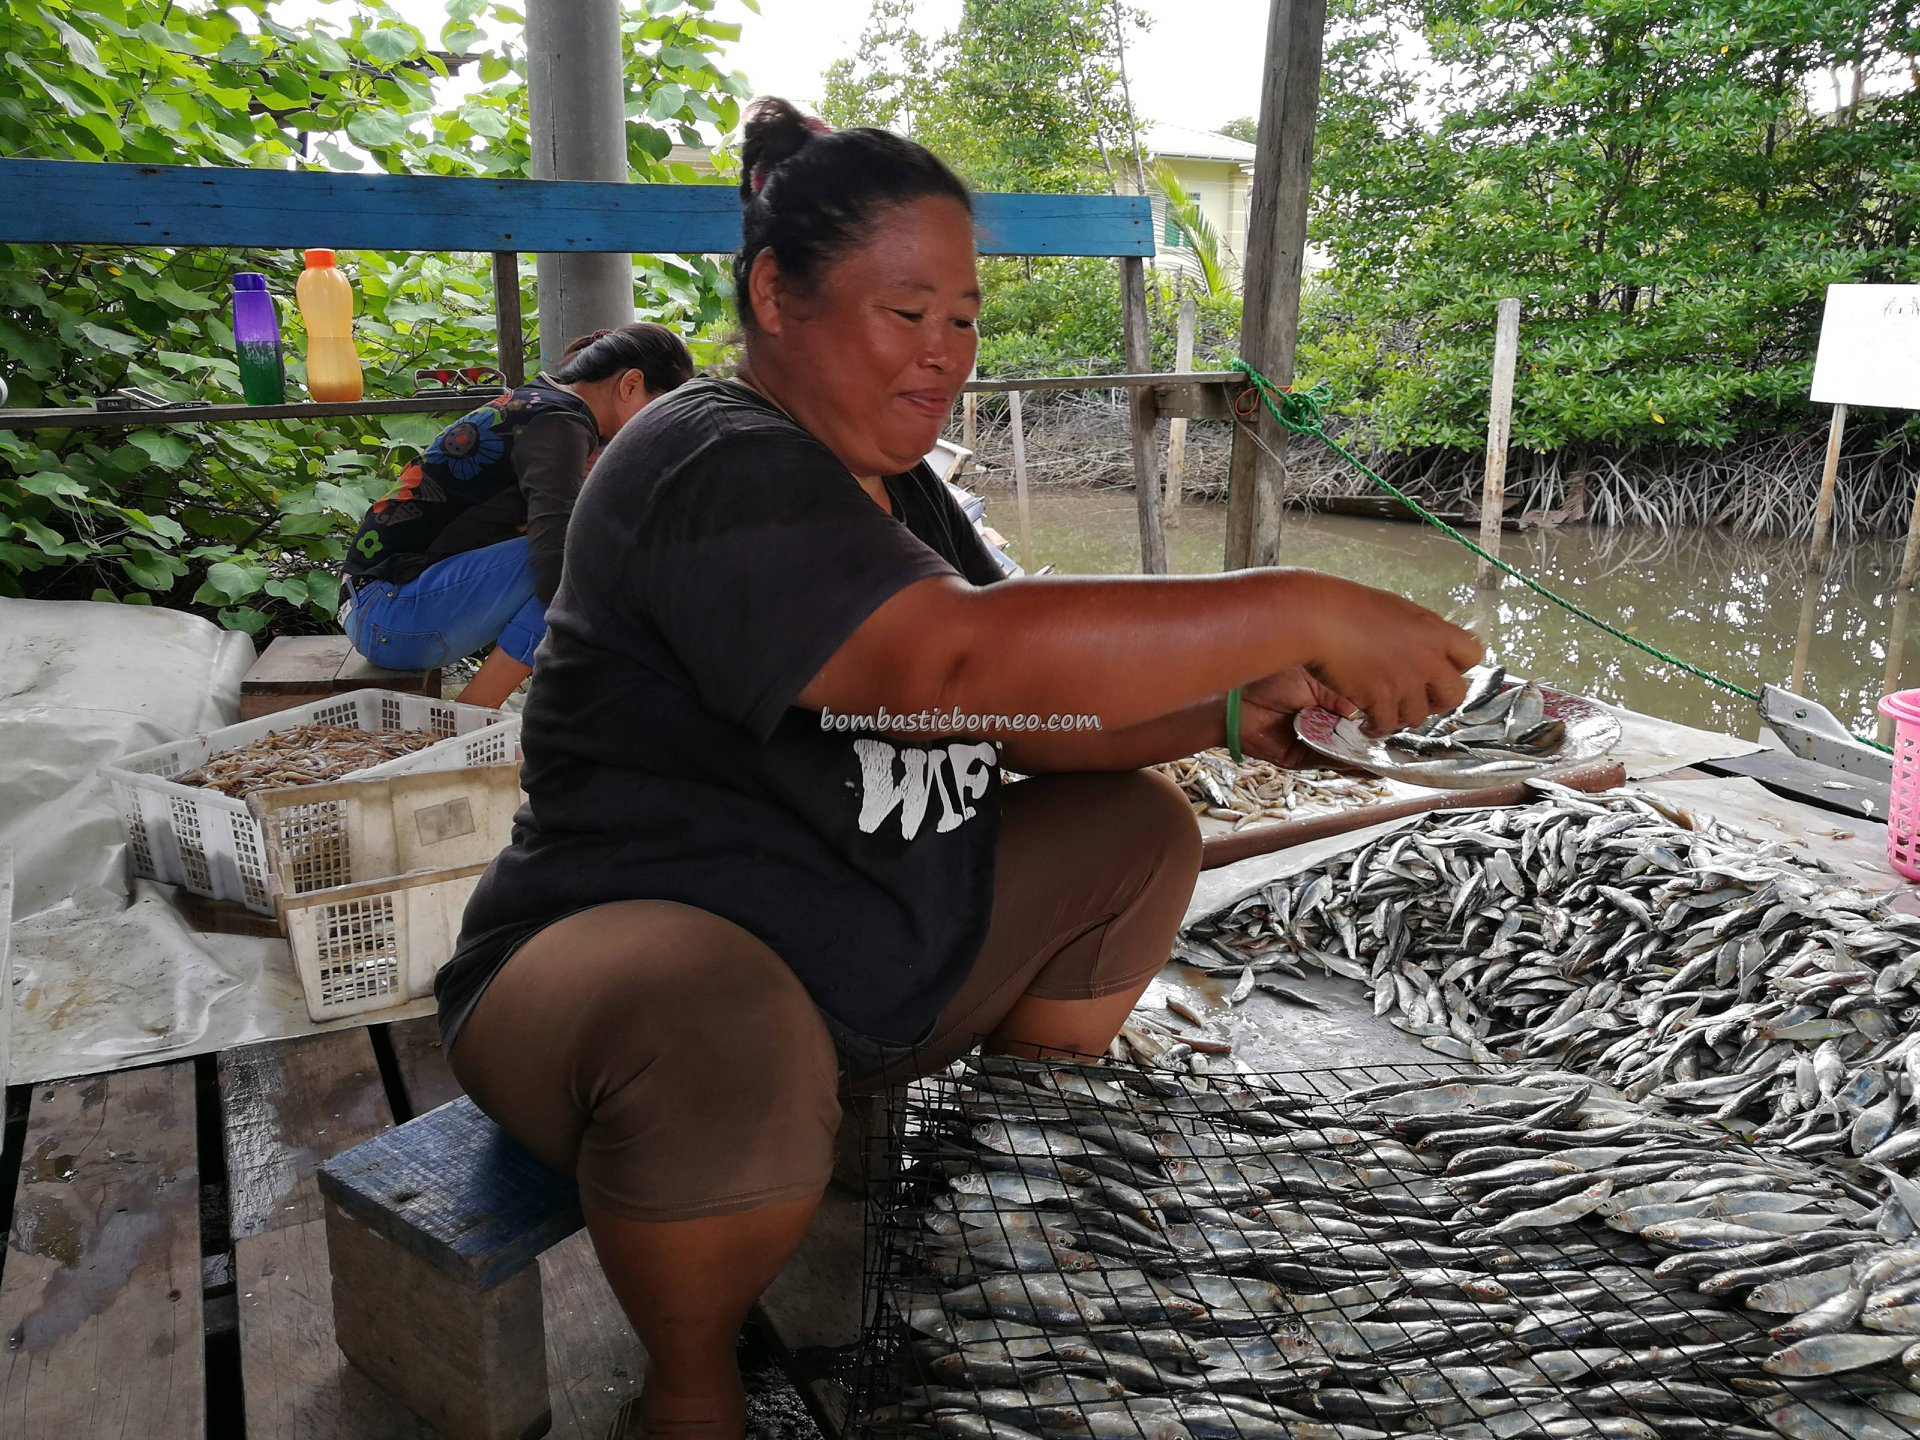 Malay Fishing Village, Floating House, authentic, traditional, Borneo, Limbang, Malaysia, Sarawak, Tourism, travel guide, seafood, exotic delicacy, smoked fish, fishy snack, transborneo, 老越旅游景点